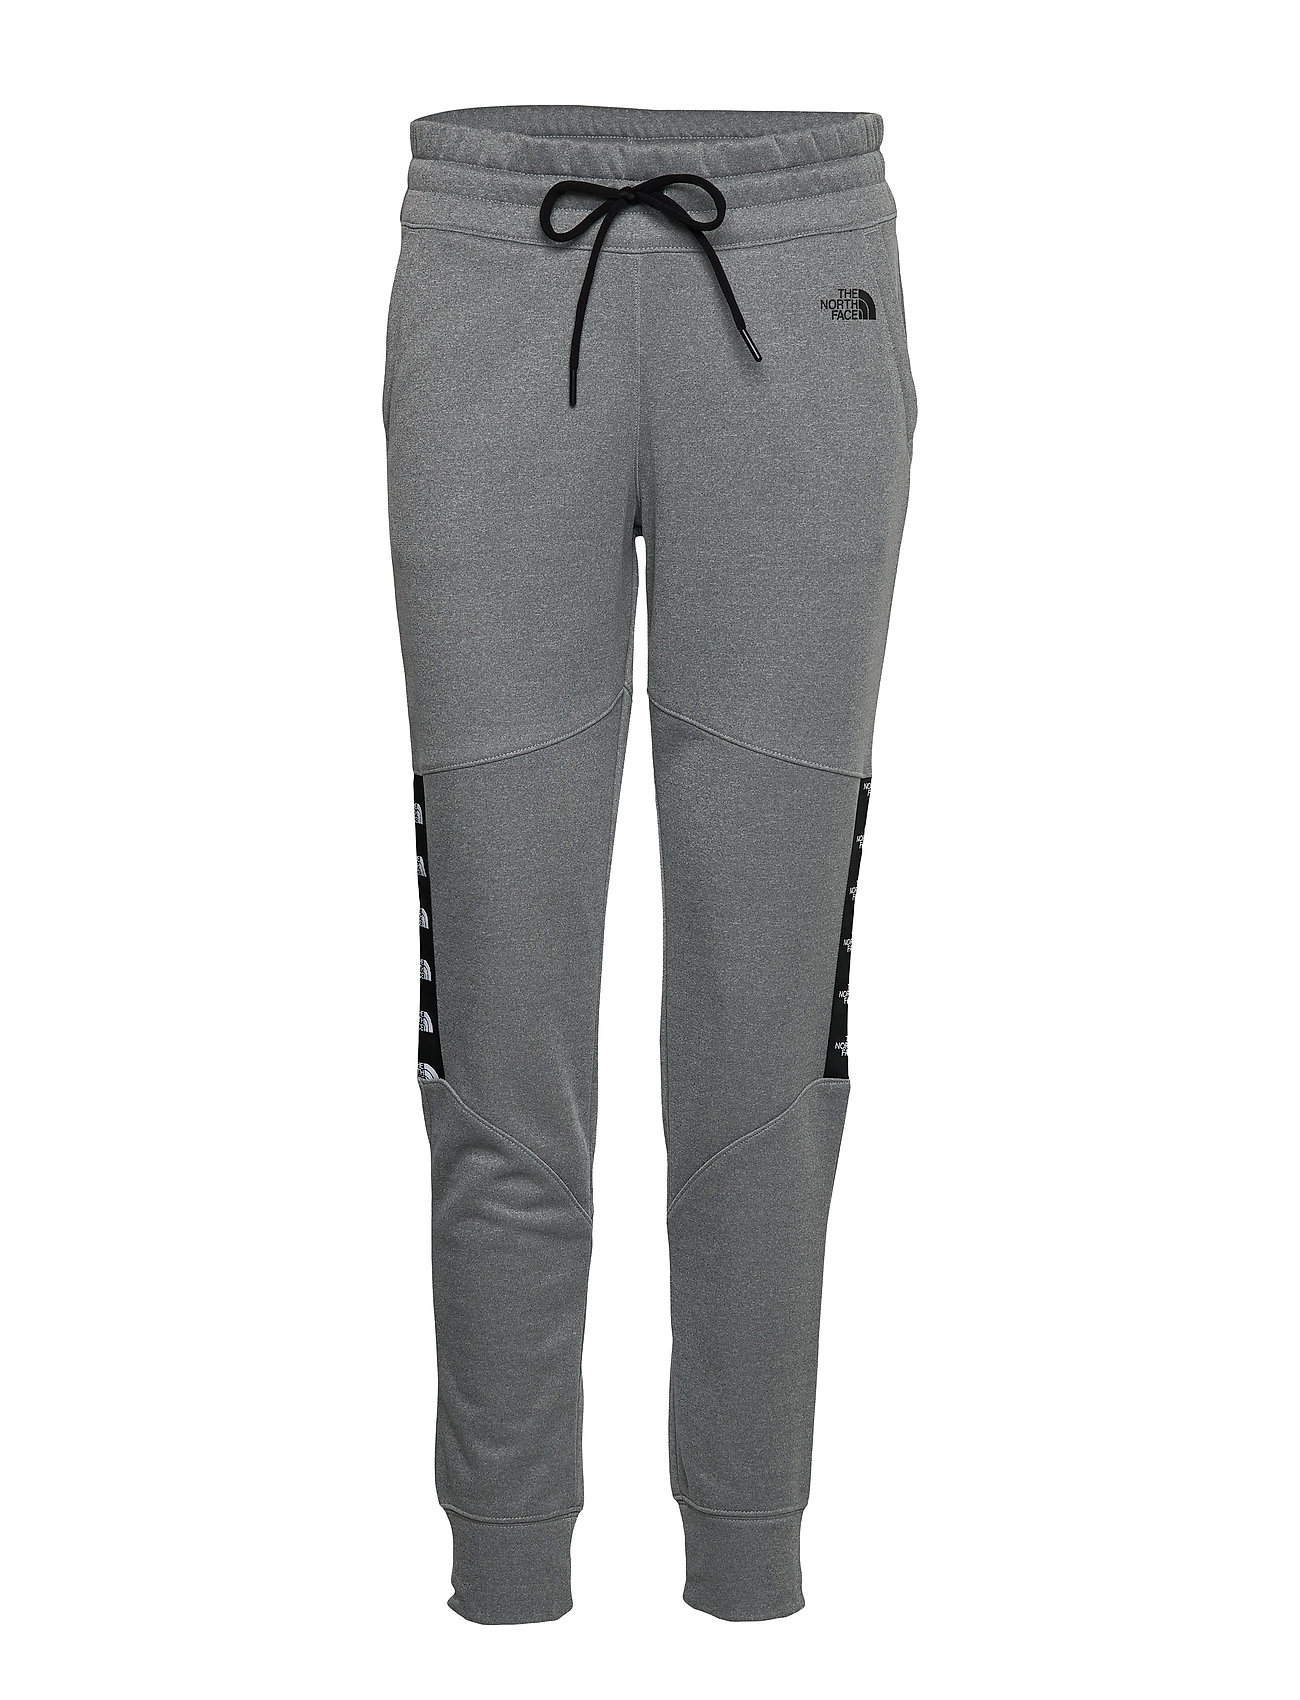 The North Face W TNL PANT - TNF MED GREY HR